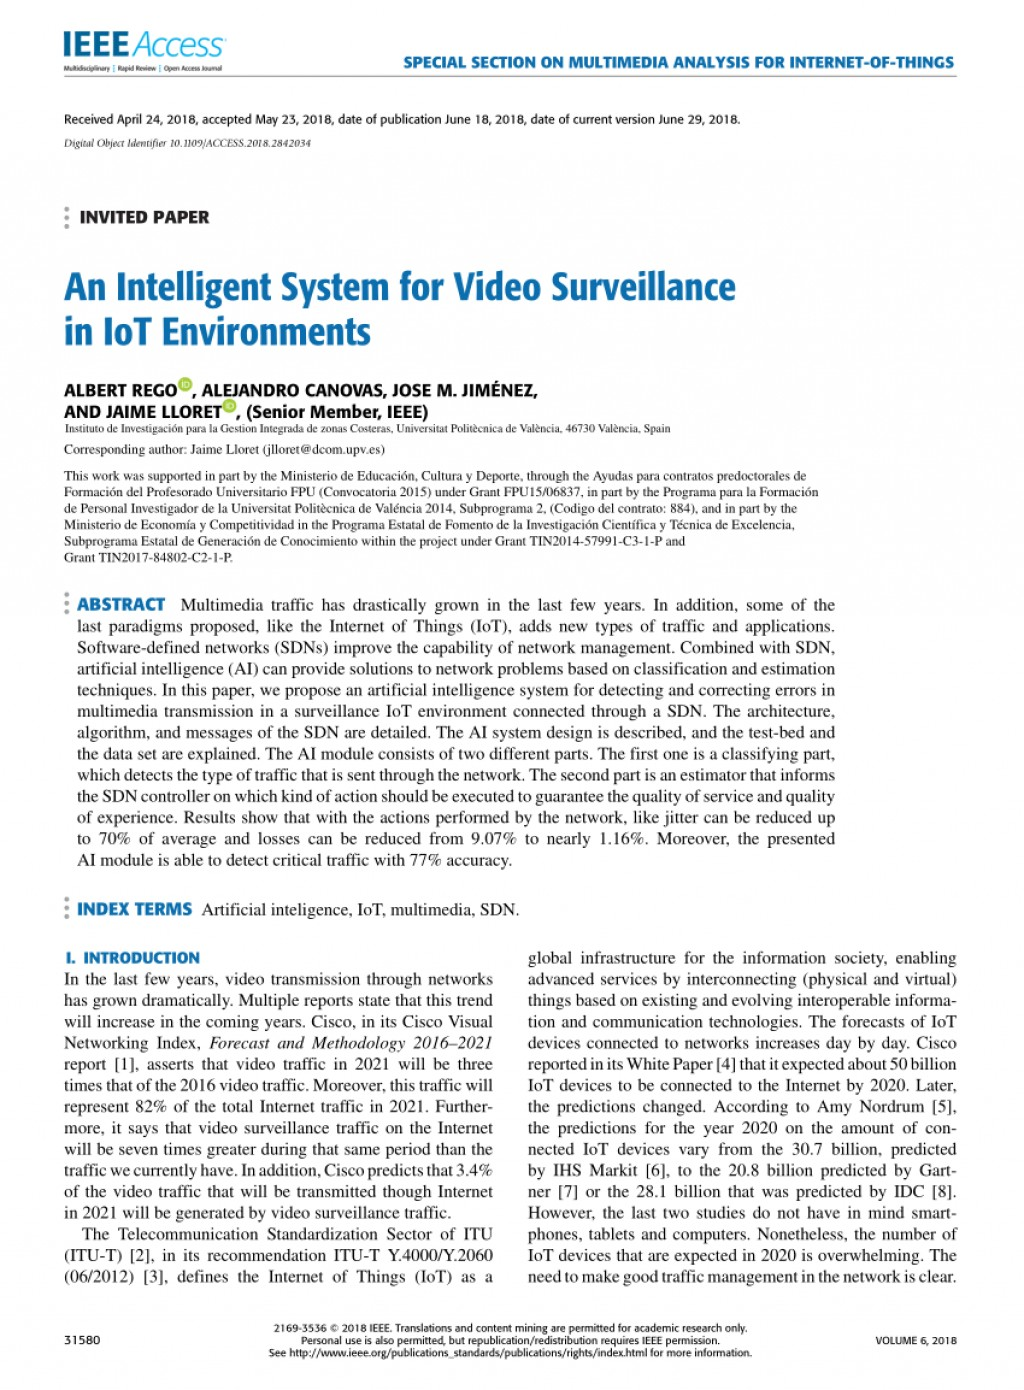 003 Largepreview Research Paper Artificial Intelligence Fantastic Ieee 2017 Large